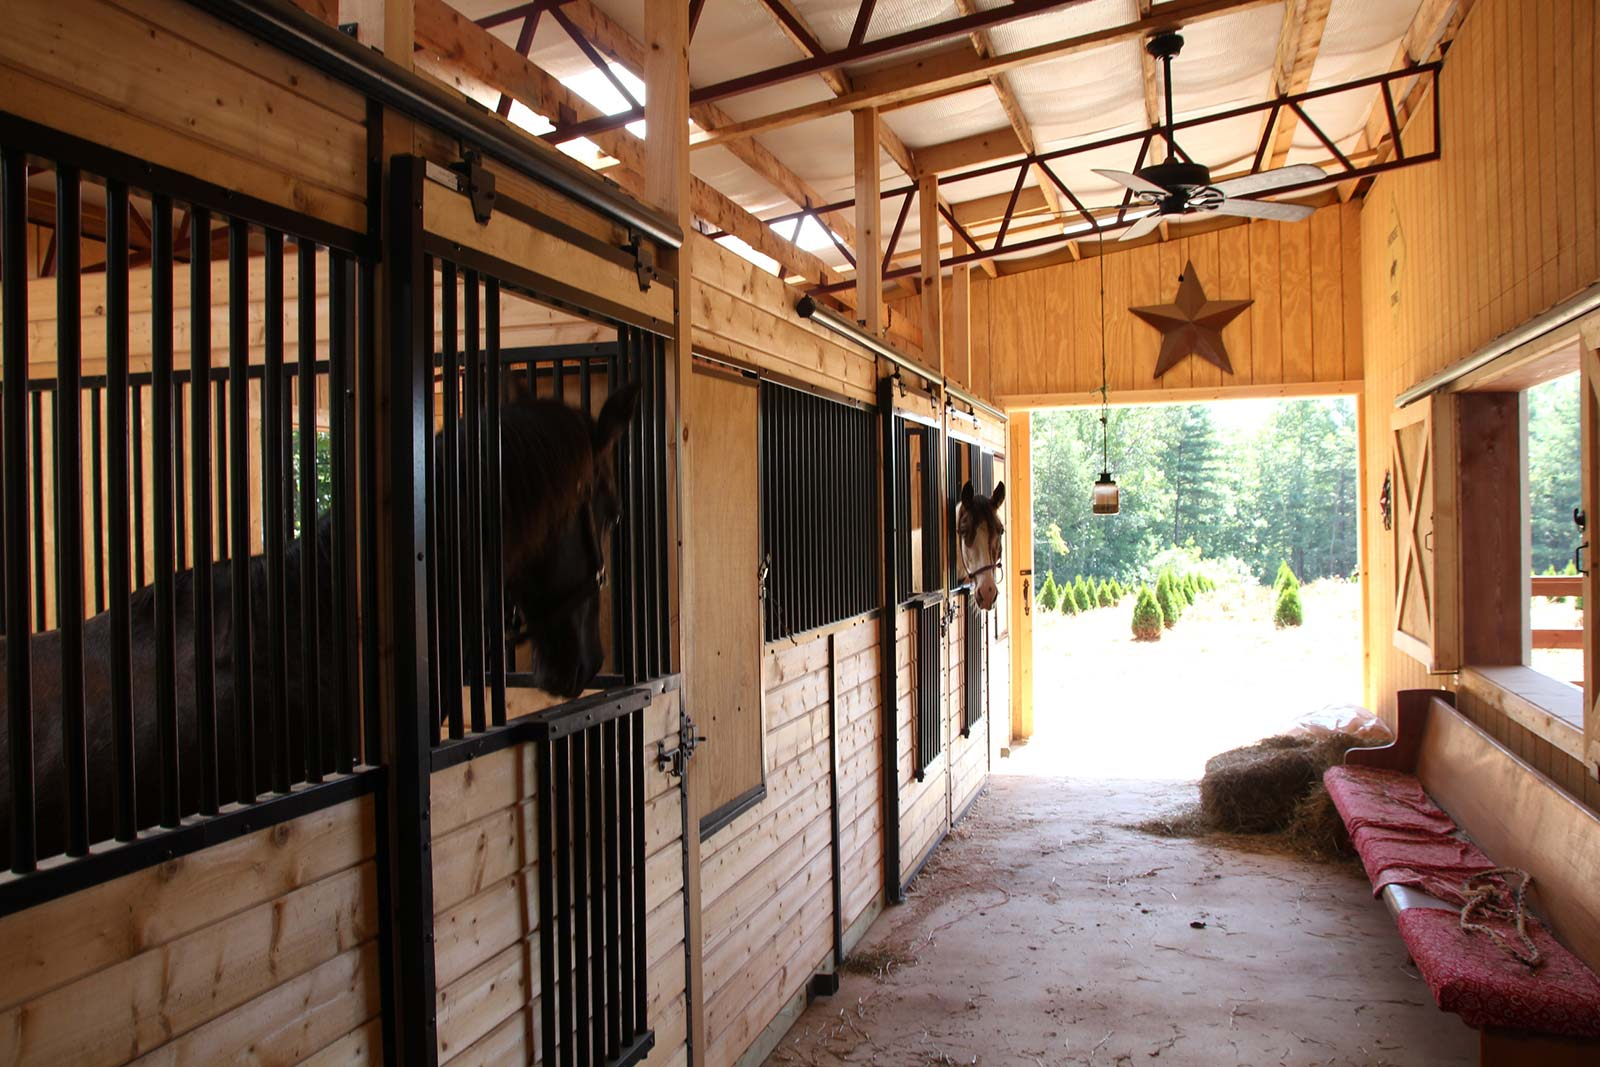 Close-up of horse stalls